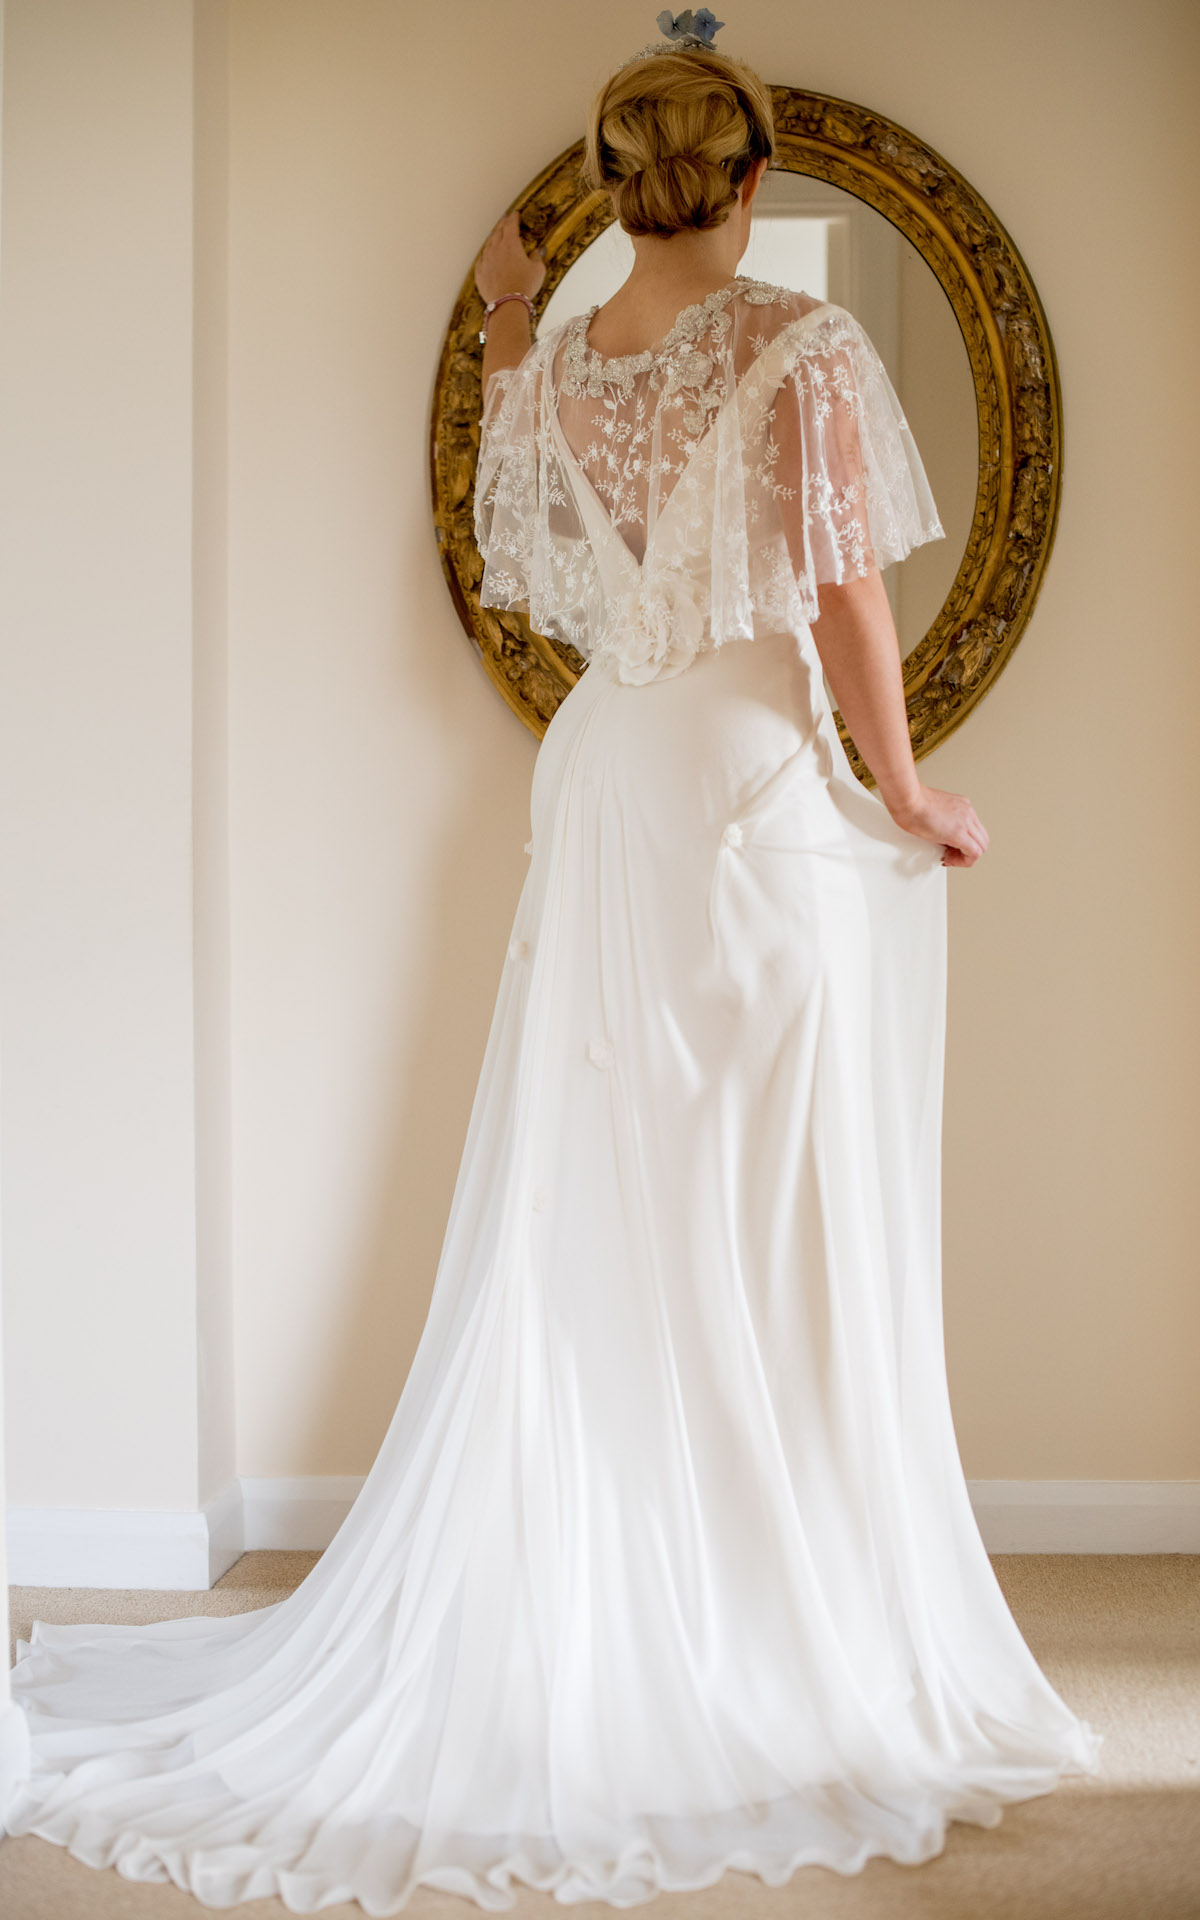 NORFOLK BRIDE KATRINE MOGENSEN DRESS